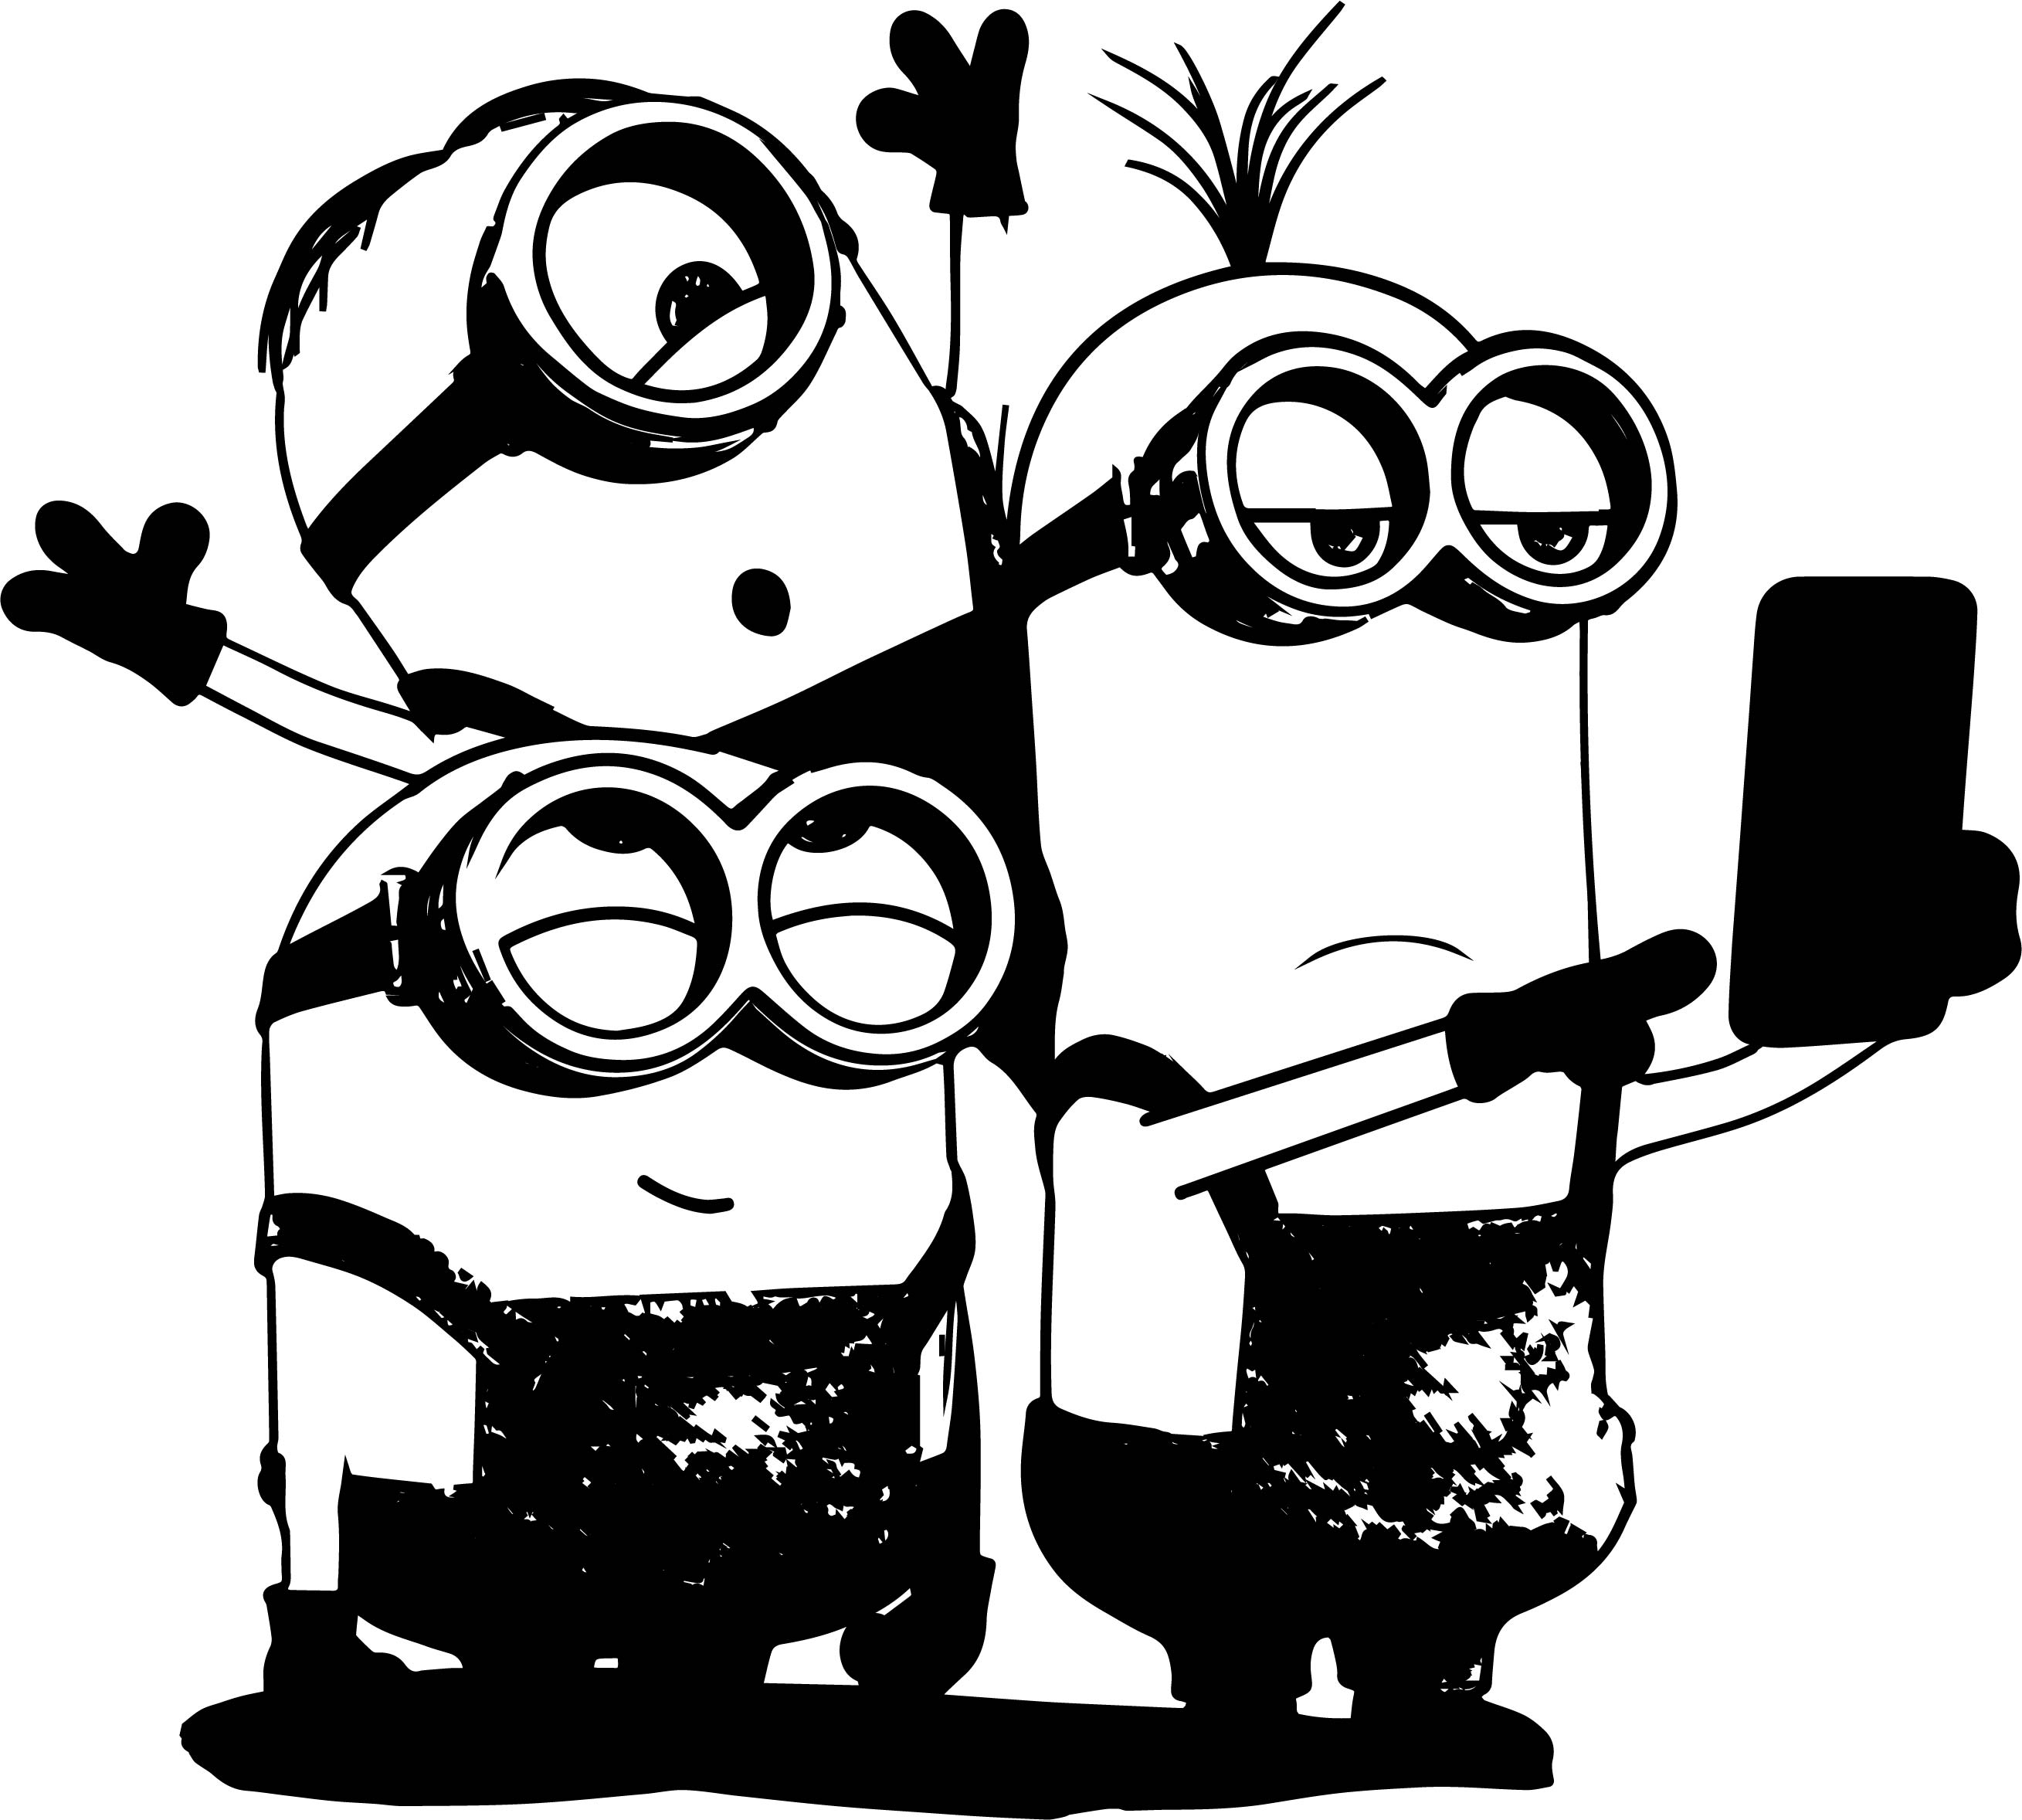 Minions Selfie Coloring Page | Wecoloringpage.com Minion Drawing Dave